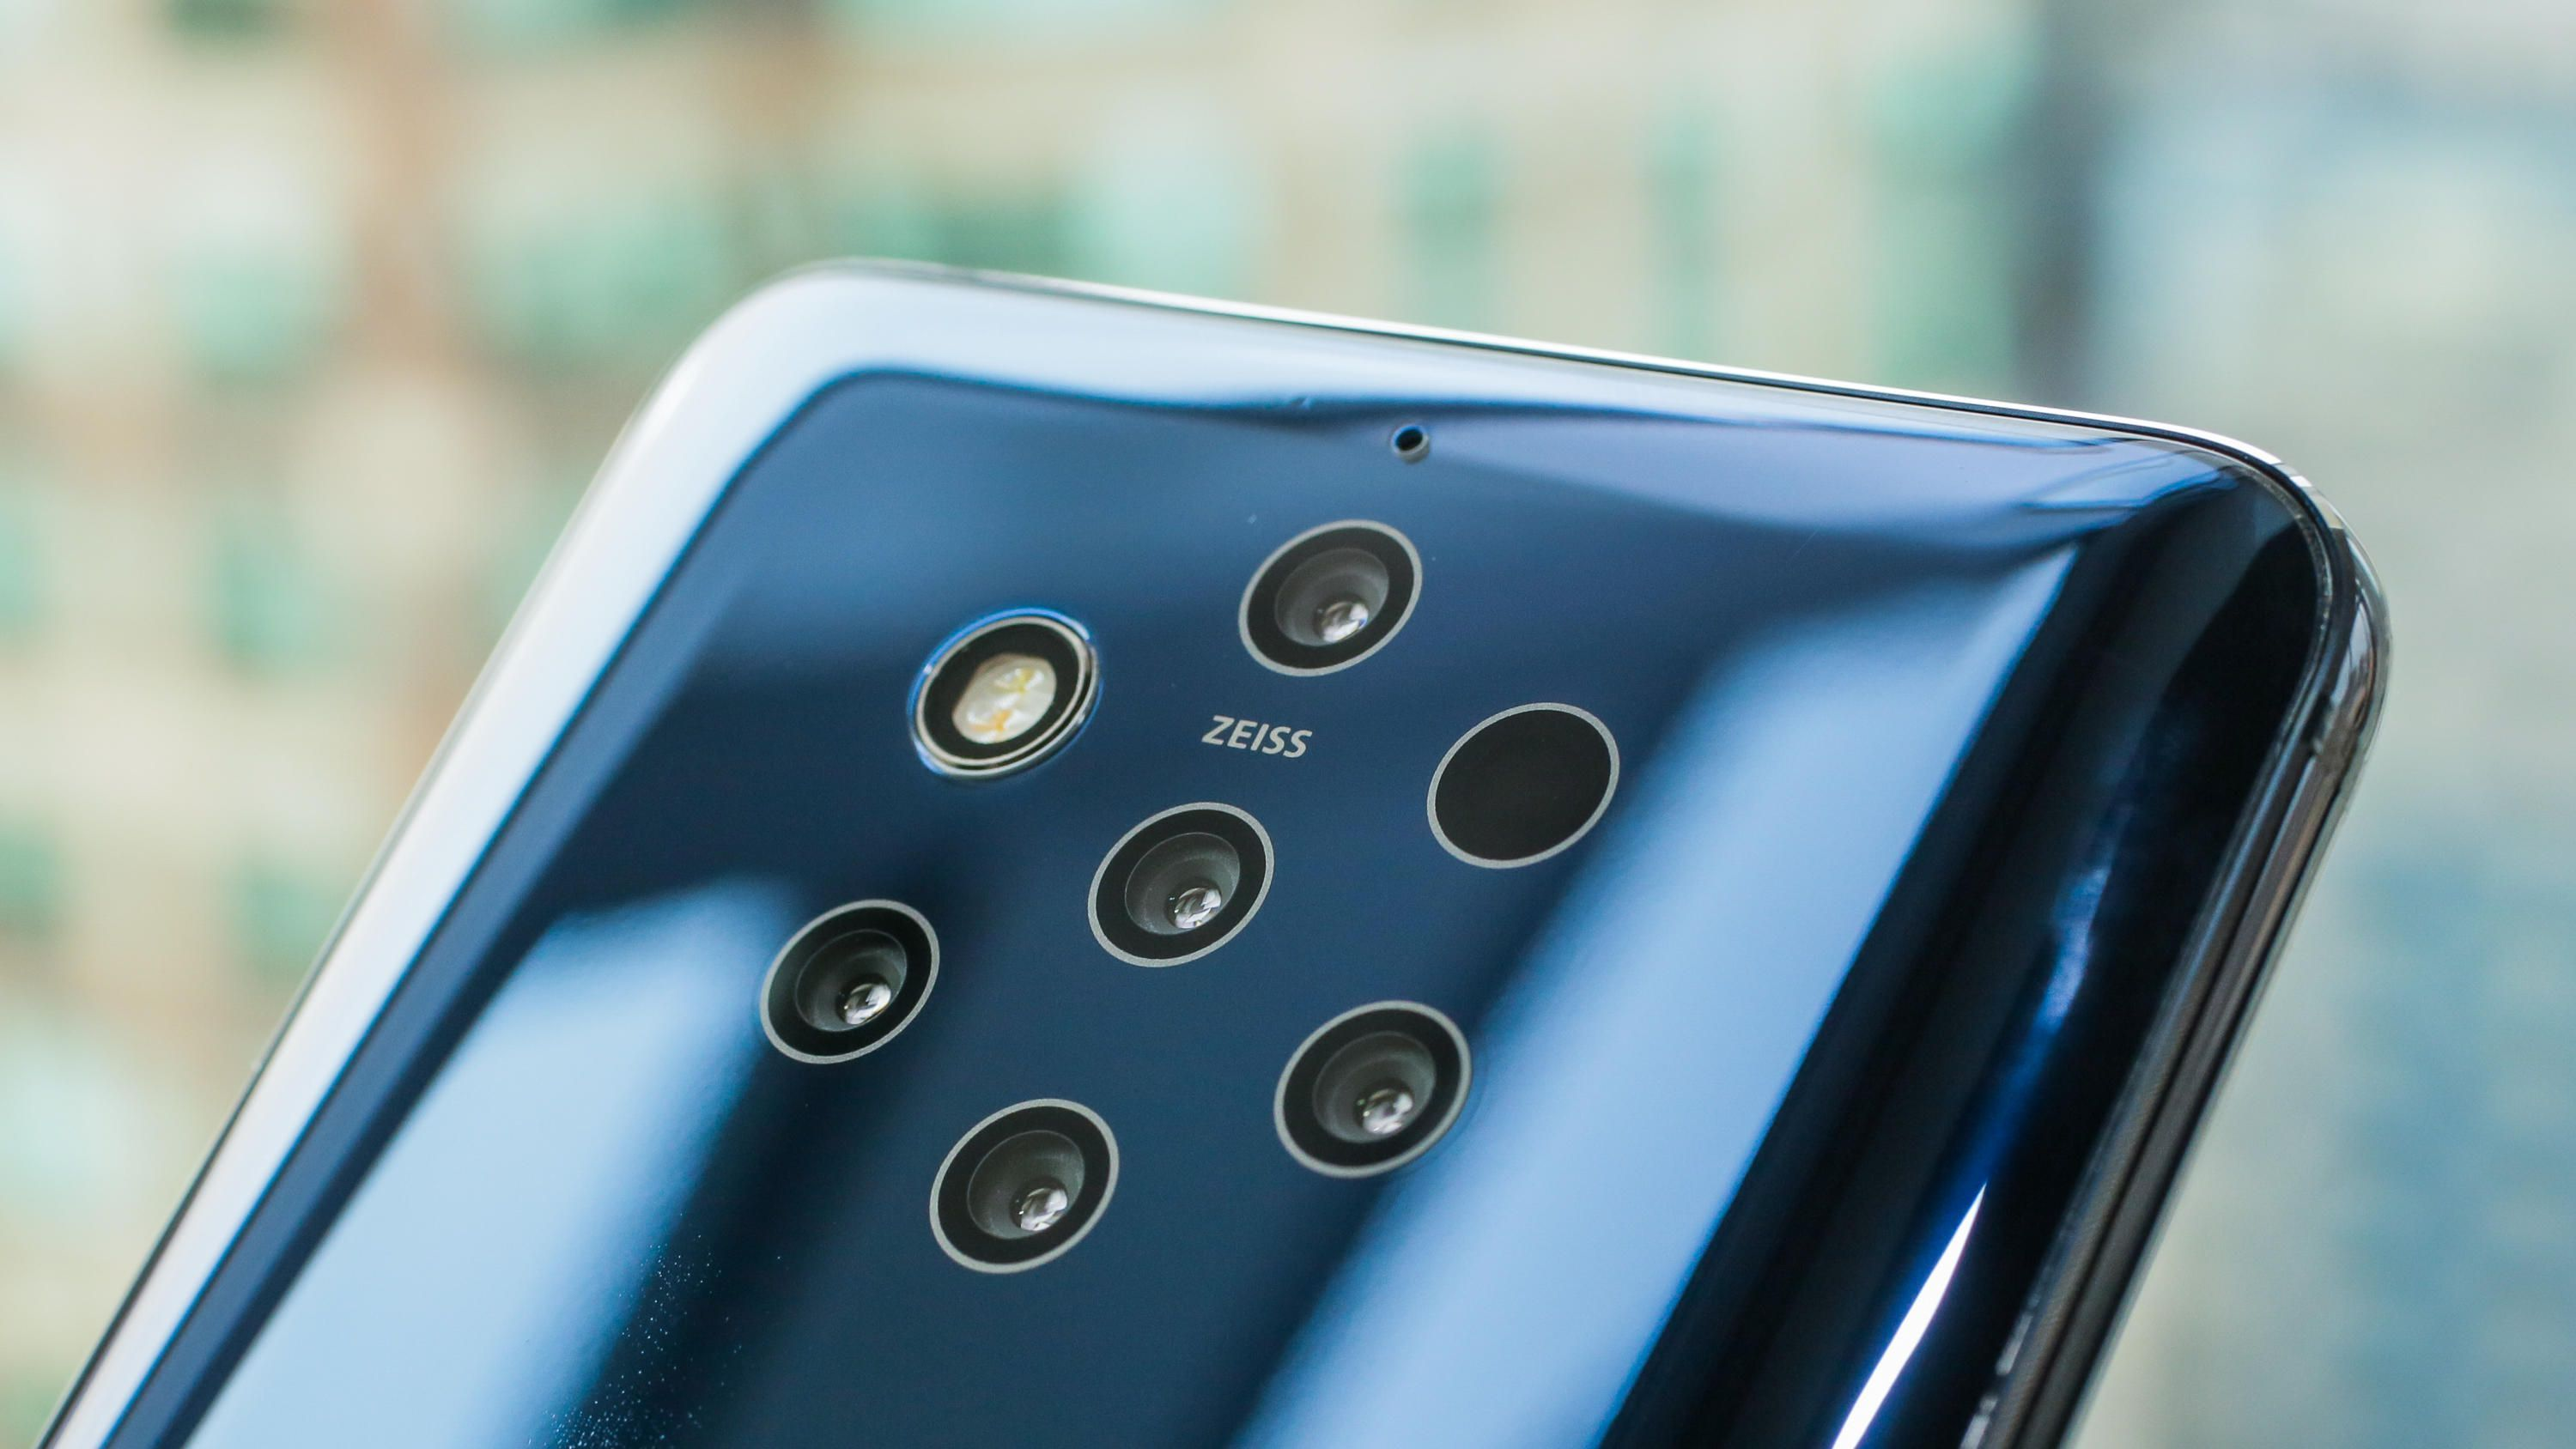 Nokia 9 PureView has 5 rear cameras *yawn* Camera phone